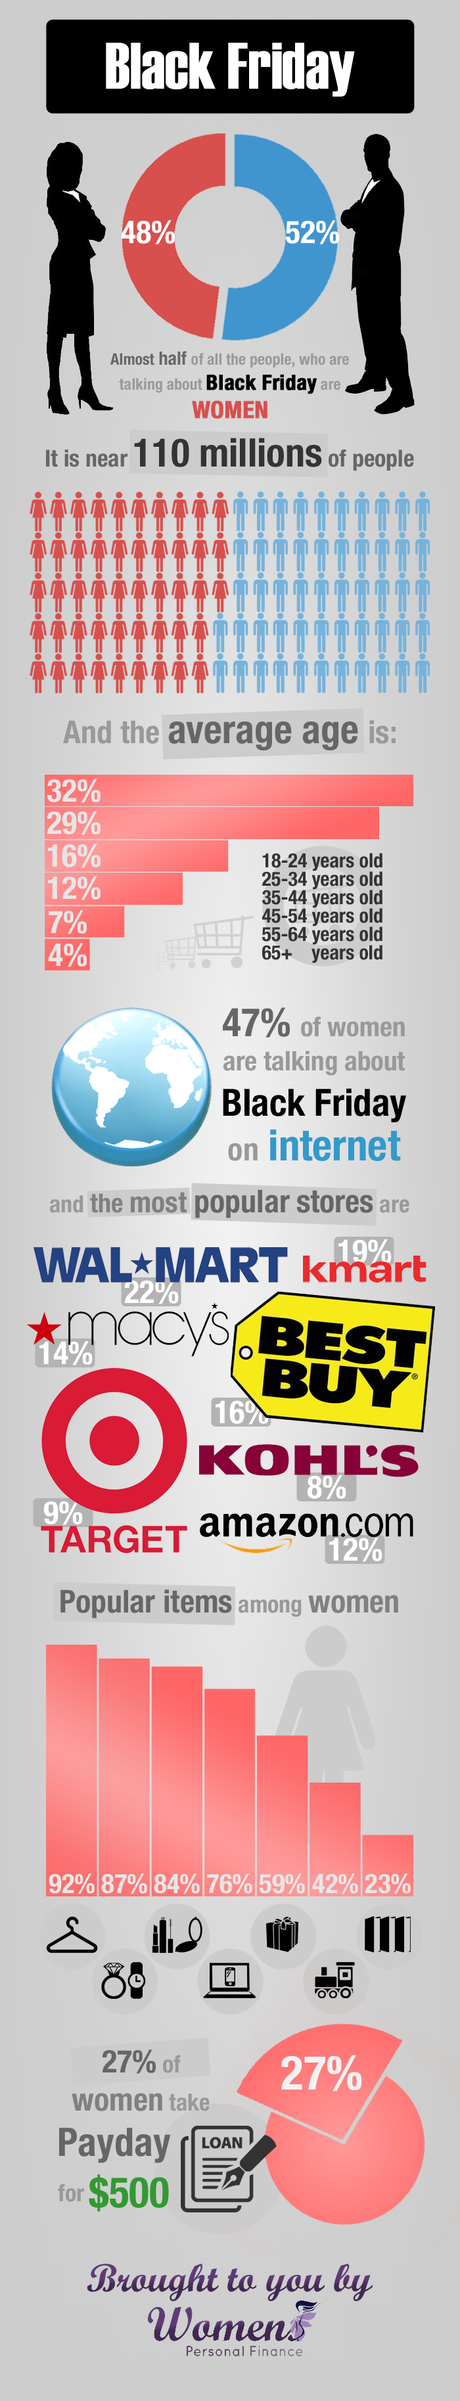 womenspersonalfinance net black friday infographic v2 Womens  Black Friday Infographic